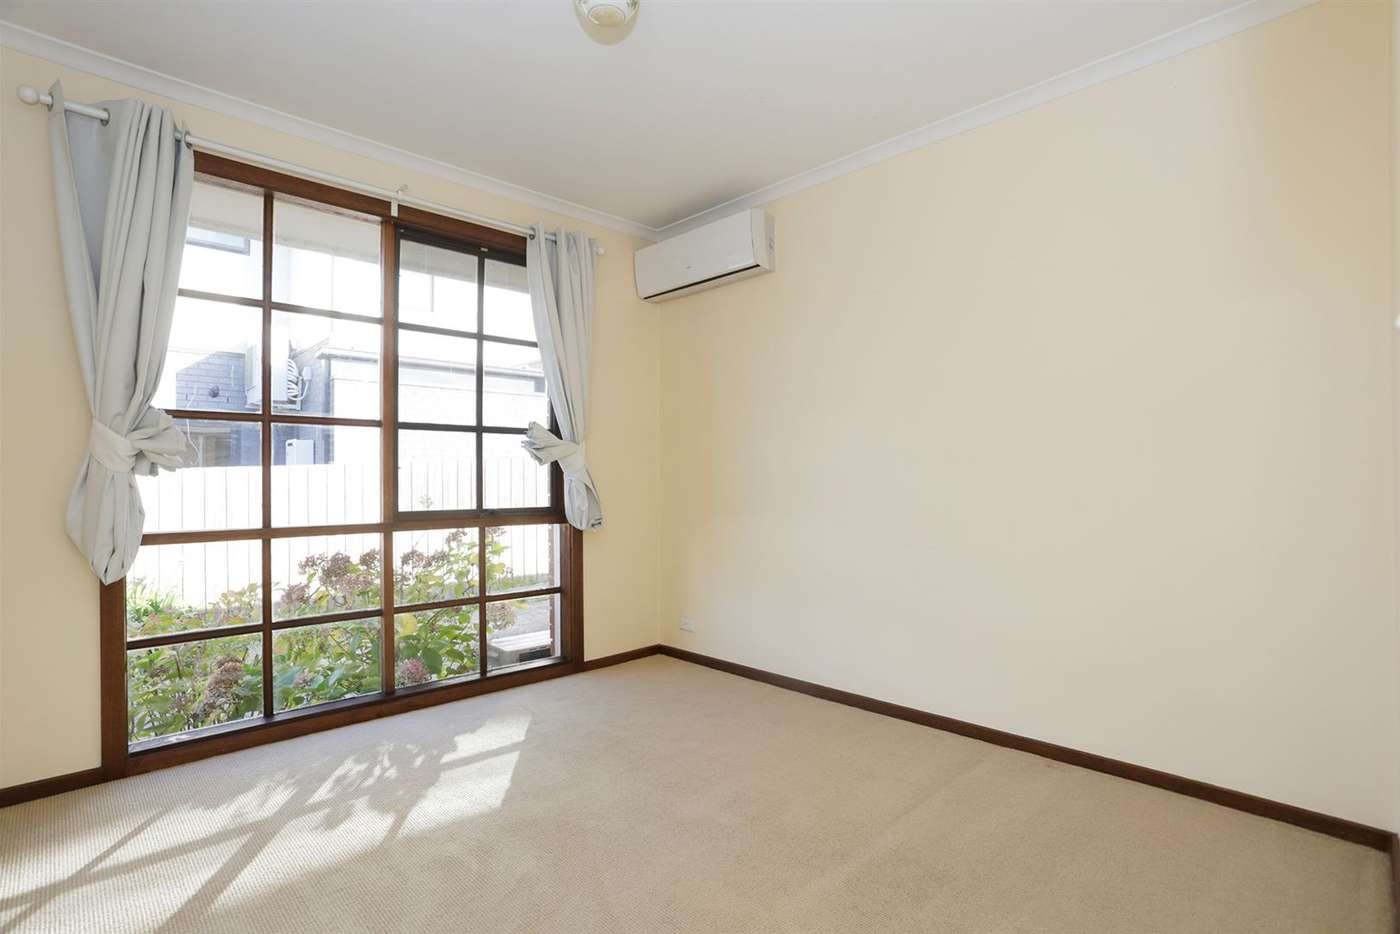 Sixth view of Homely unit listing, 1/32 Lee Avenue, Mount Waverley VIC 3149